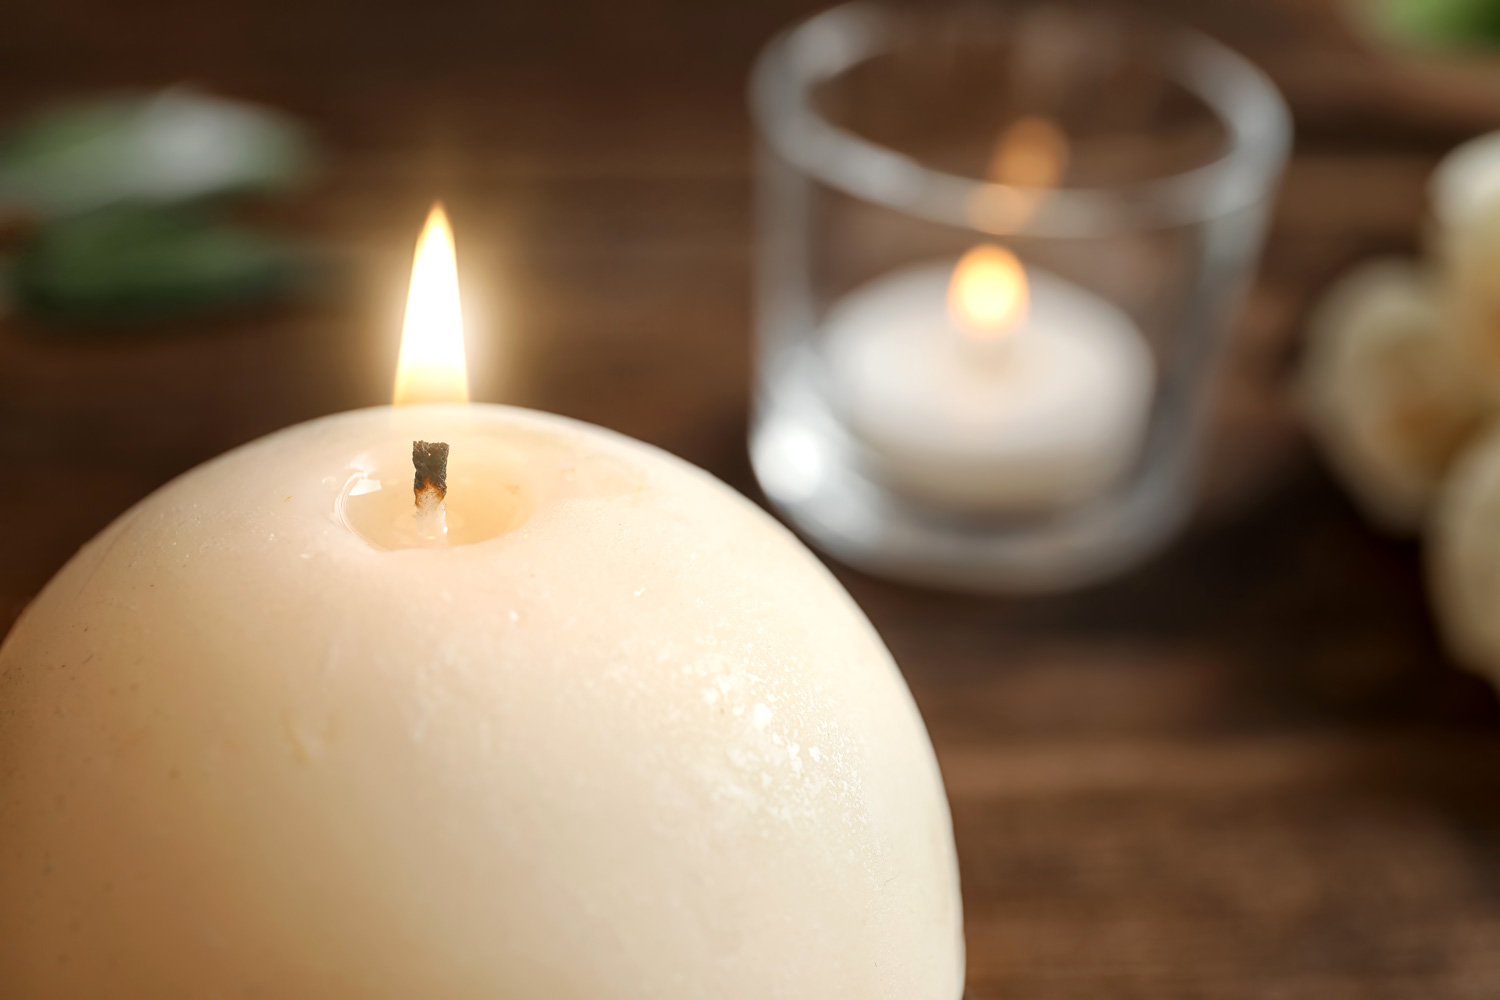 Spruce up your room with these ball candles and enjoy the dimensions it creates.